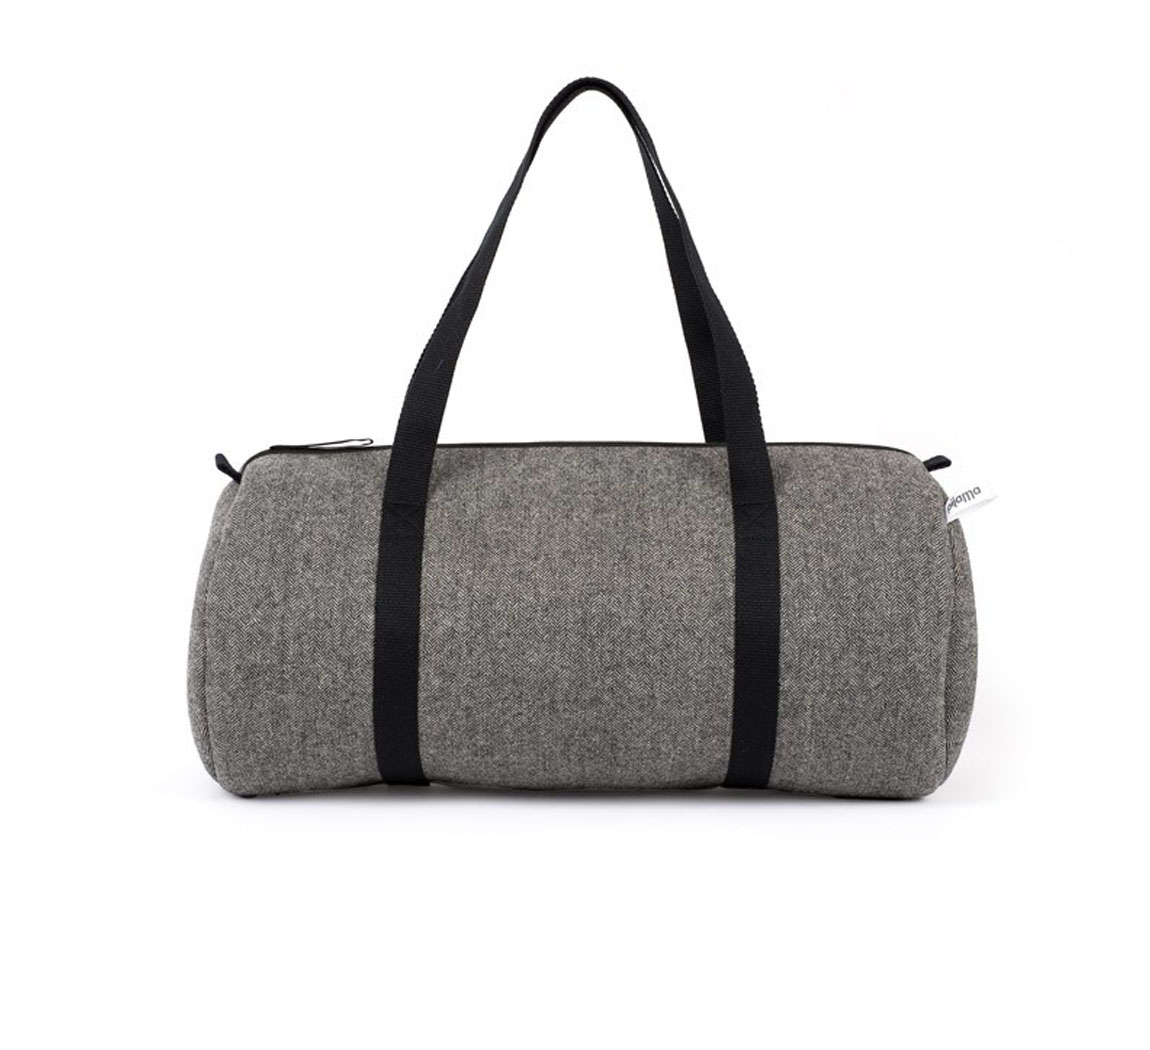 Sac Duffle Bag